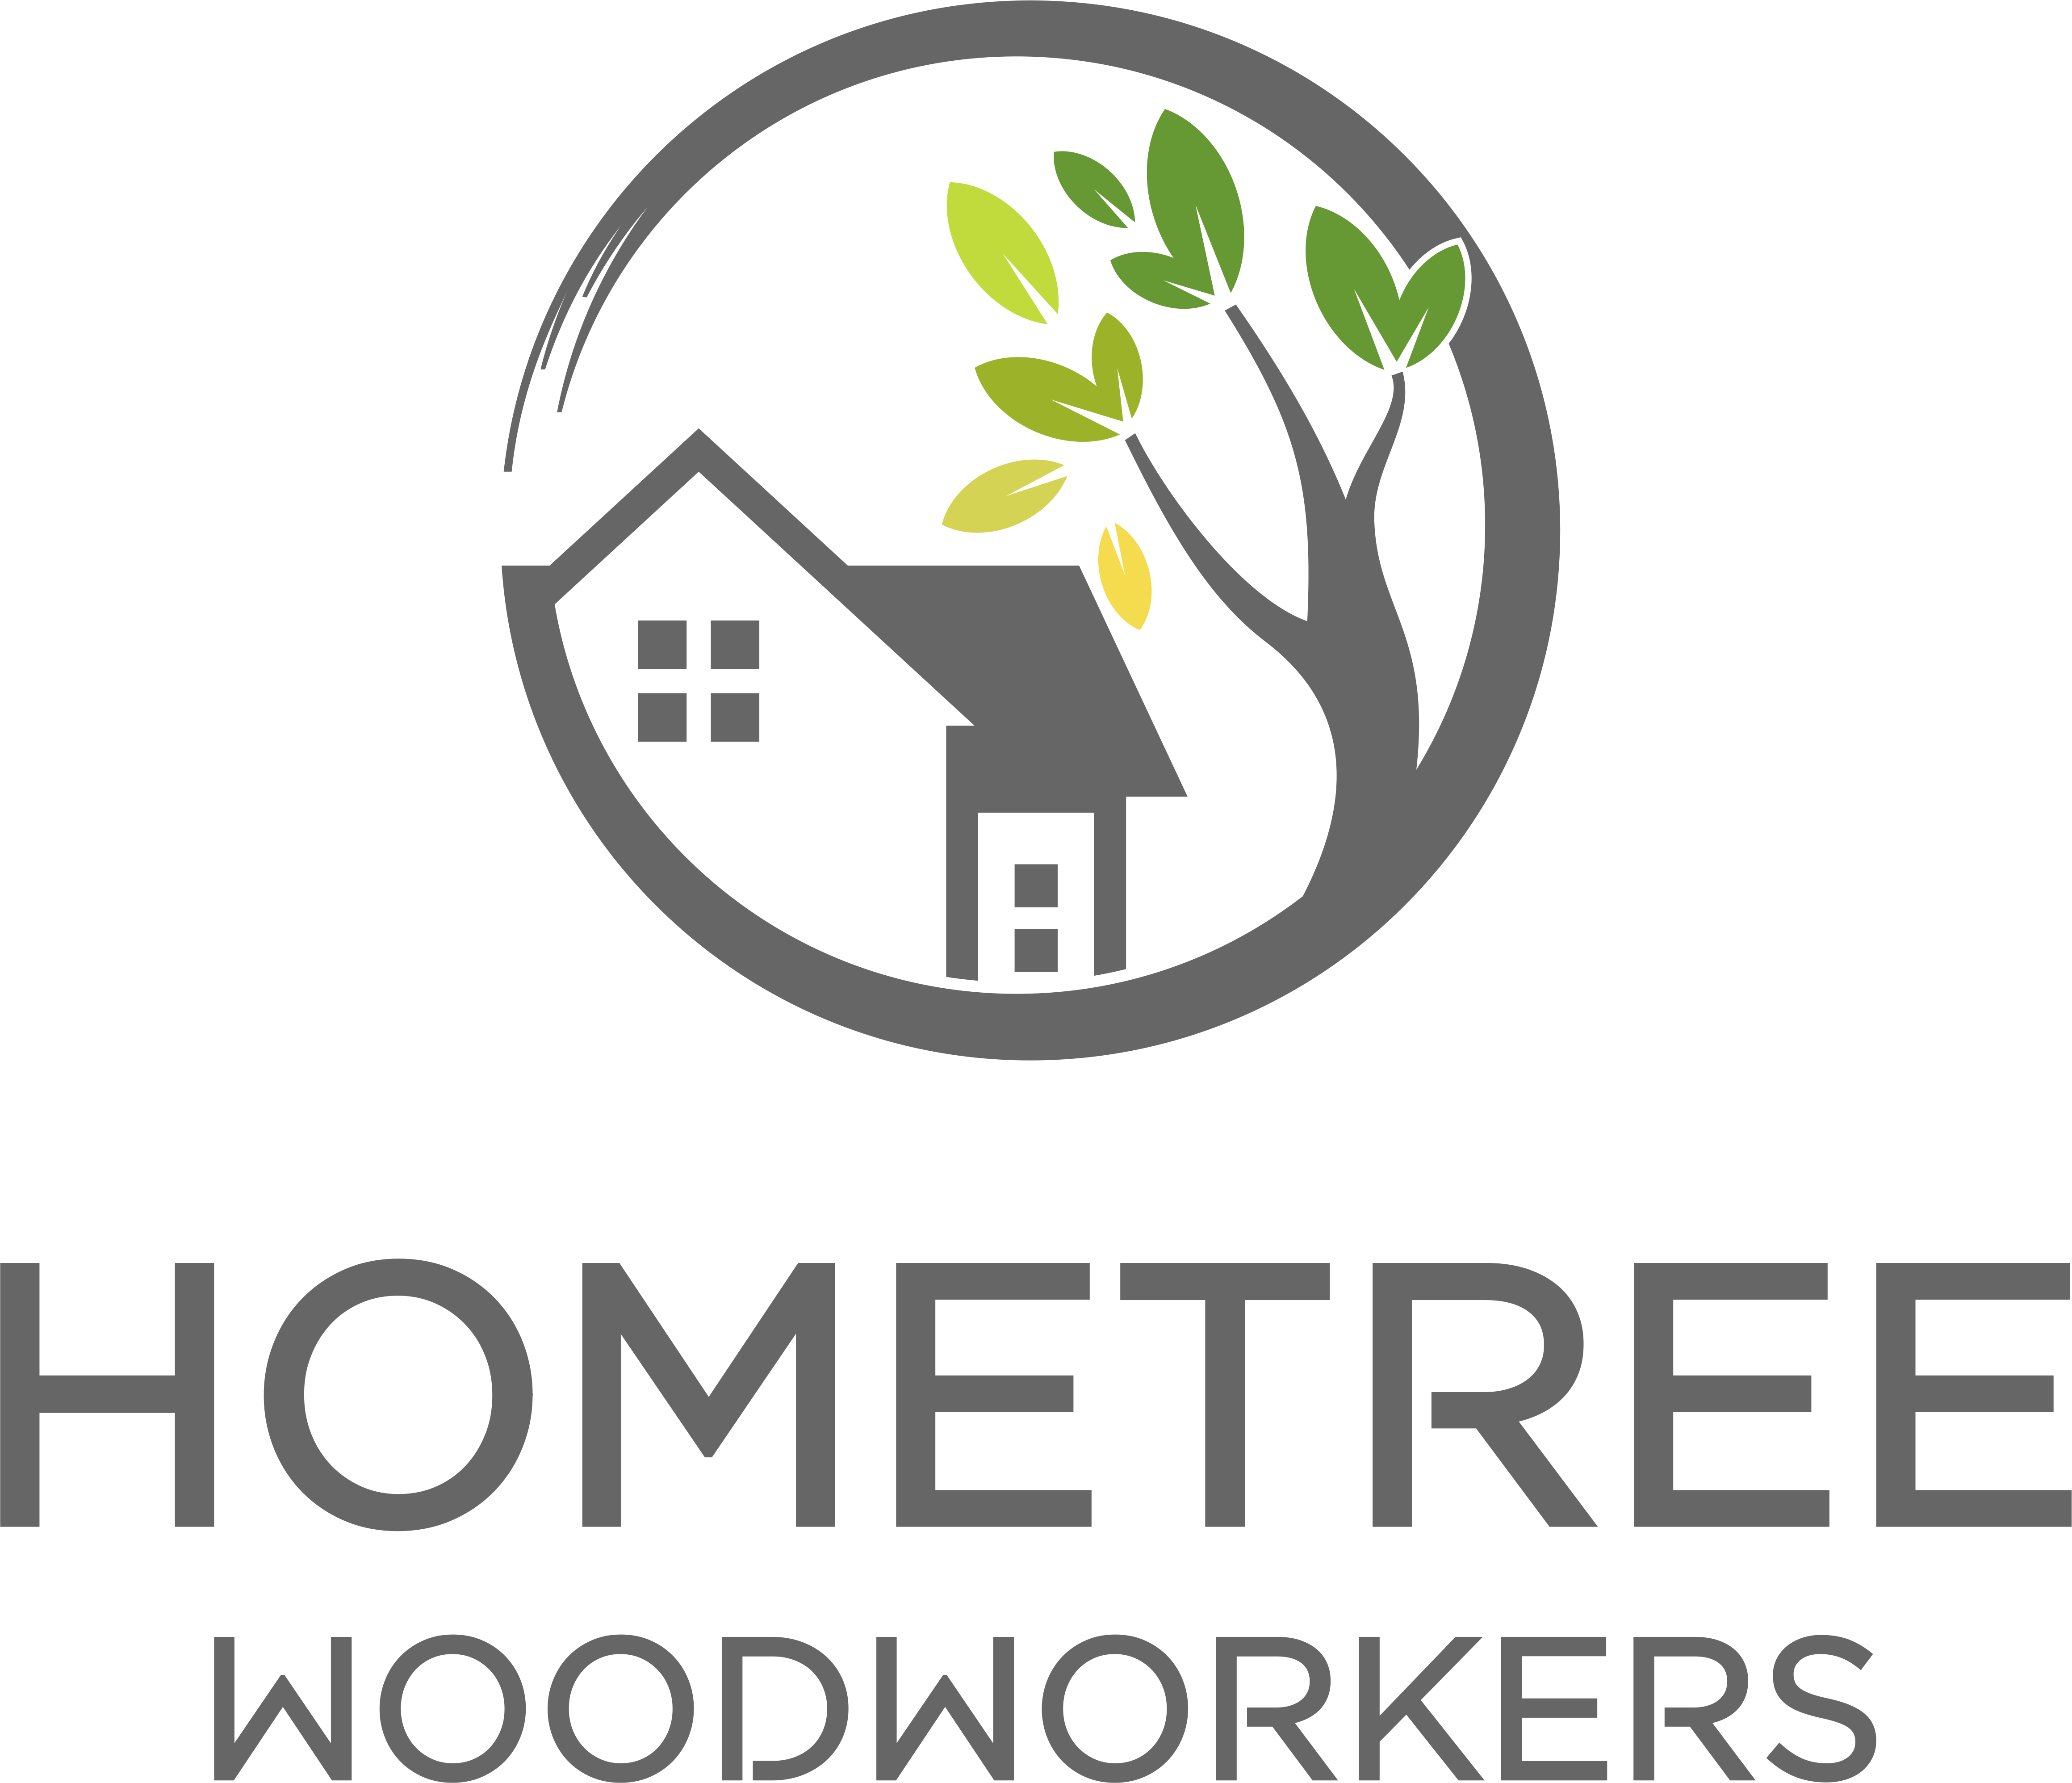 New logo design for HomeTree Woodworkers